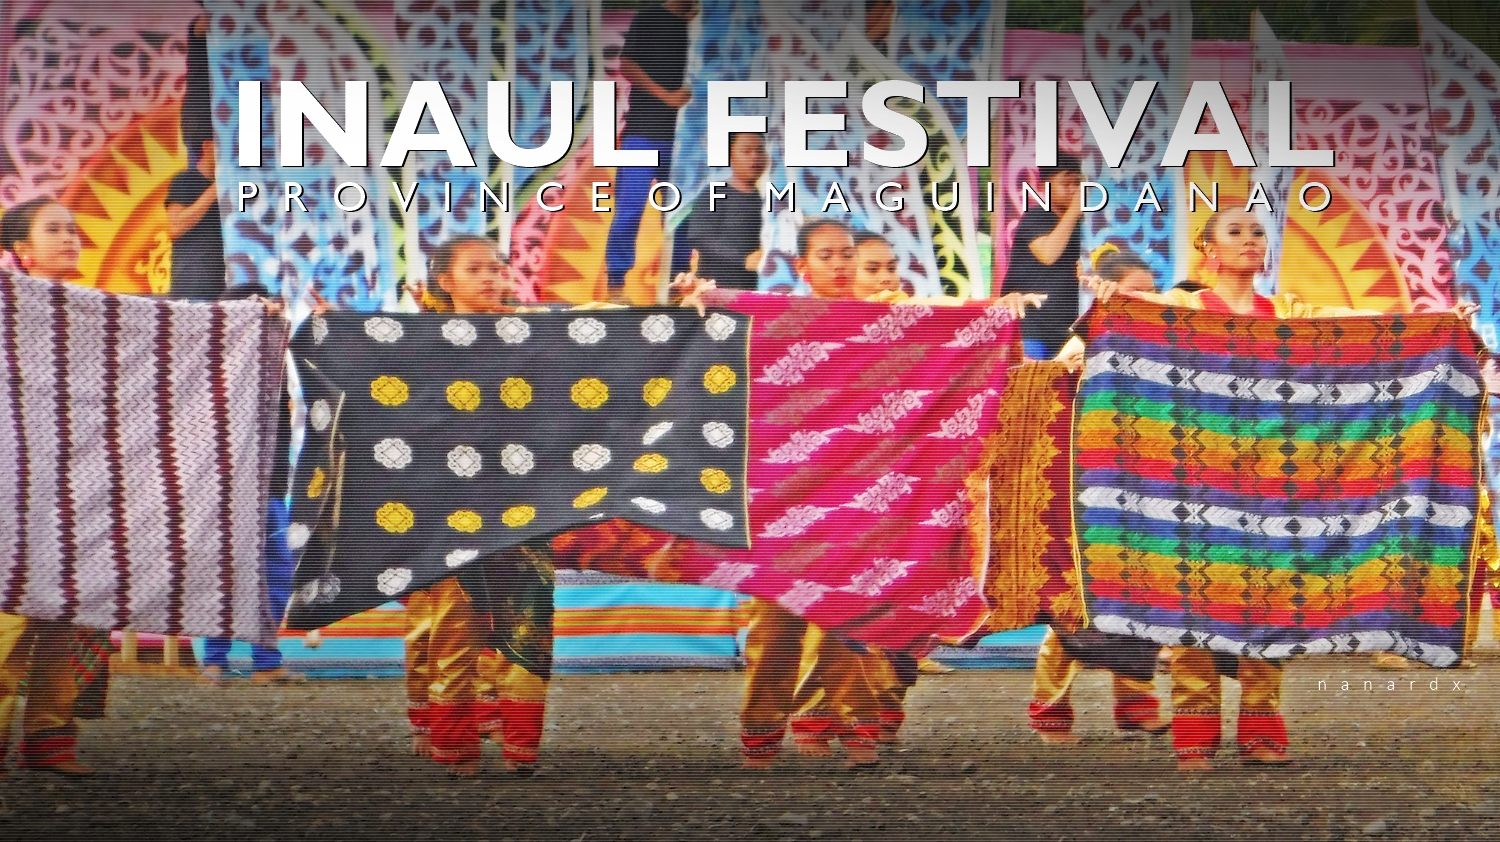 A bigger, grander Inaul Festival in Maguindanao this year